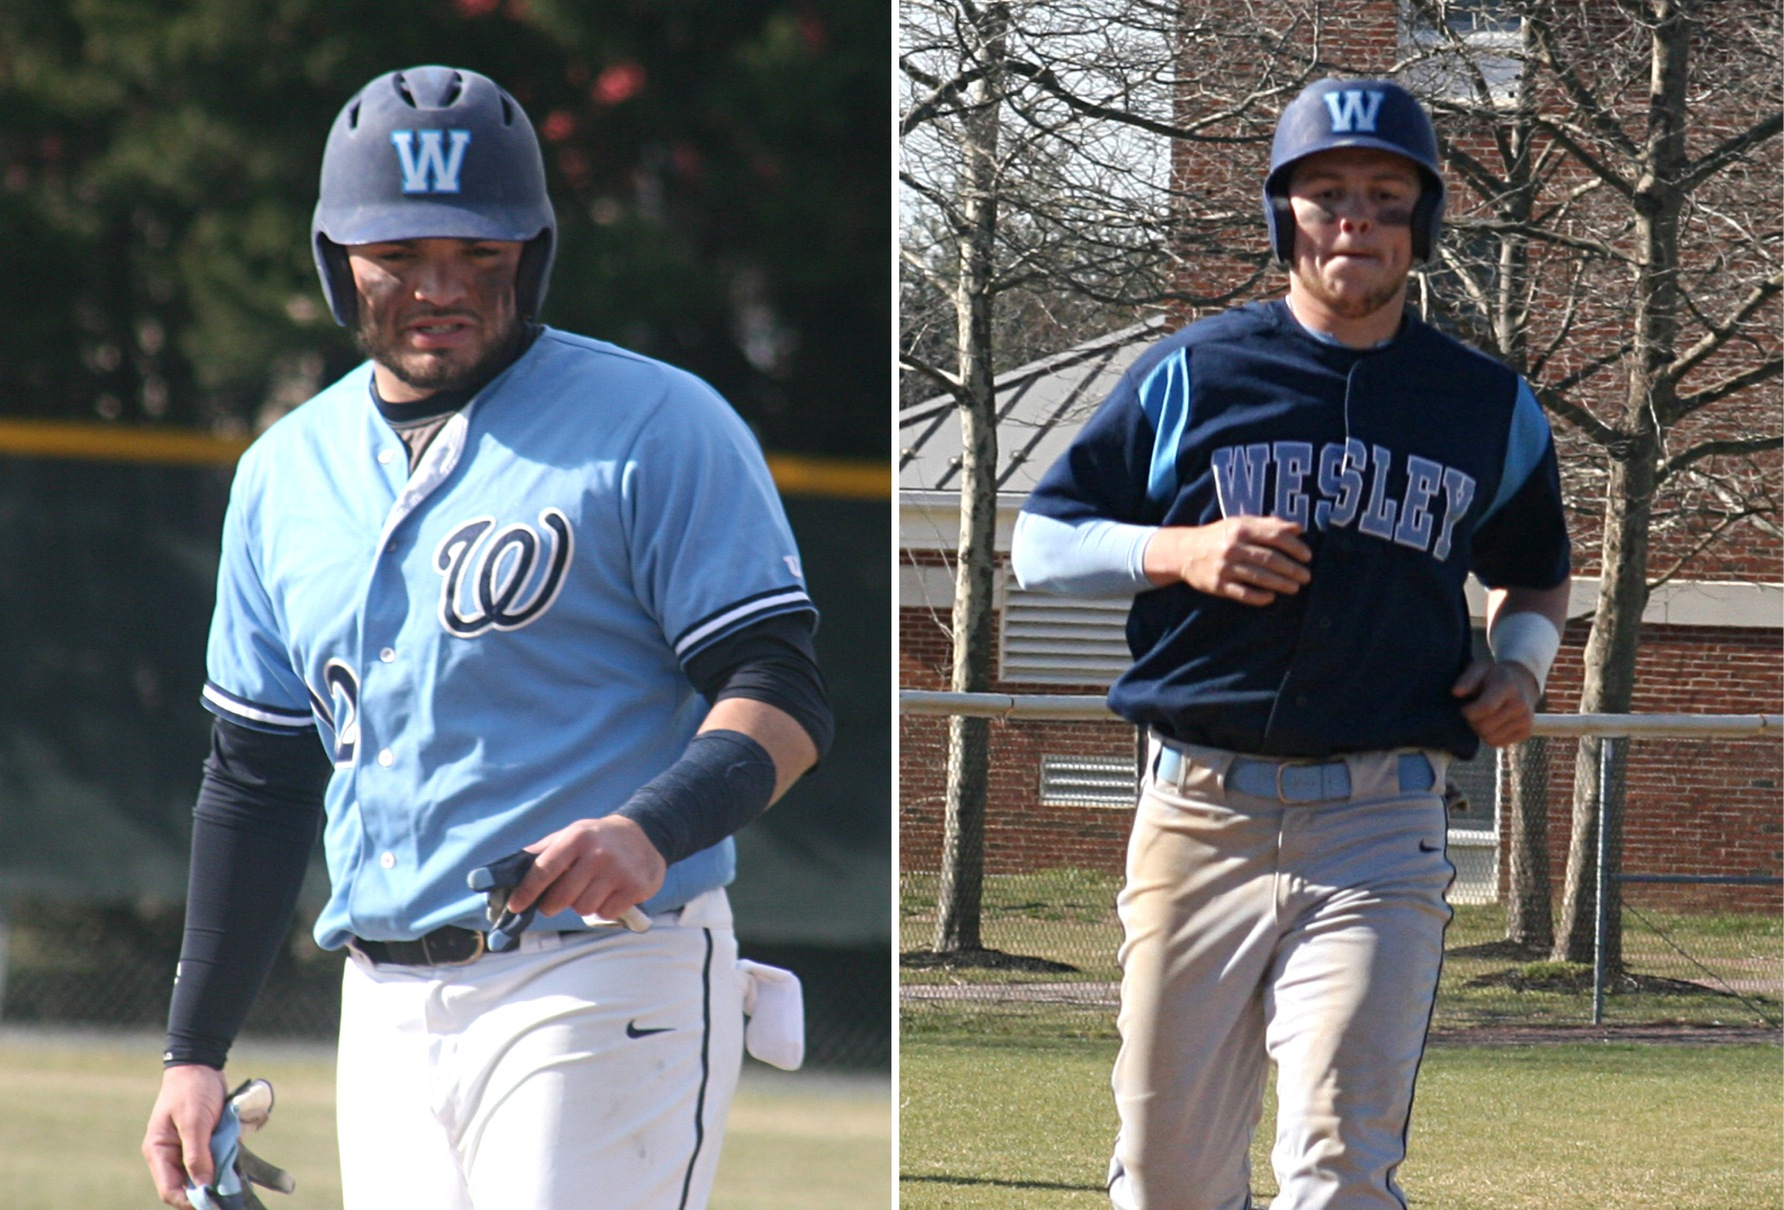 Mears, Seibert homer twice in split with Marymount